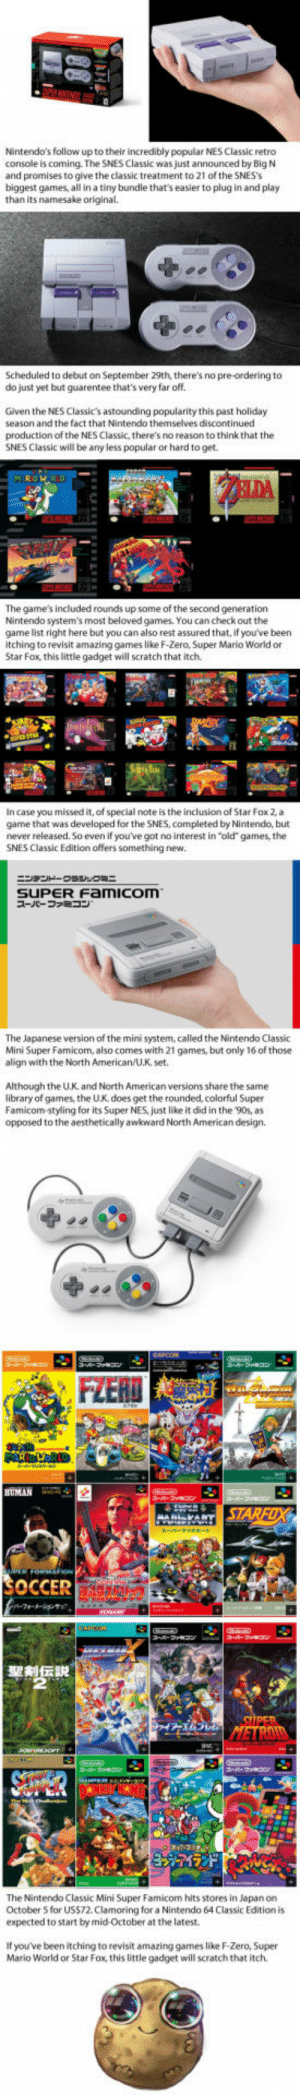 "laughoutloud-club:  SNES Classic Edition Announced, Brings Back The '90s in more ways than you can imagine: Nintendo's follow up to their incredibly popular NES Classic retro  console is coming. The SNES Classic was just announced by Big N  and promises to give the classic treatment to 21 of the SNES's  biggest games, all in a tiny bundle that's easier to plug in and play  than its namesake original.  Scheduled to debut on September 29th, there's no pre-ordering to  do just yet but guarentee that's very far off.  Given the NES Classic's astounding popularity this past holiday  season and the fact that Nintendo themselves discontinued  production of the NES Classic, there's no reason to think that the  SNES Classic will be any less popular or hard to get.  The game's included rounds up some of the second generation  Nintendo system's most beloved games. You can check out the  game list right here but you can also rest assured that, if you've been  itching to revisit amazing games like F-Zero, Super Mario World or  Star Fox, this little gadget will scratch that itch.  In case you missed it, of special note is the inclusion of Star Fox 2,a  game that was developed for the SNES, completed by Nintendo, but  never released. So even if you've got no interest in ""old"" games, the  SNES Classic Edition offers something new.  SUPER Famicom  スーパーファミコン  The Japanese version of the mini system, called the Nintendo Classic  Mini Super Famicom, also comes with 21 games, but only 16 of those  align with the North American/U.K, set.  Although the U.K. and North American versions share the same  library of games, the U.K. does get the rounded, colorful Super  Famicom-styling for its Super NES, just like it did in the 90s, as  opposed to the aesthetically awkward North American design.  HUMAN  SOCCER  The Nintendo Classic Mini Super Famicom hits stores in Japan on  October 5 for US$72 Clamoring for a Nintendo 64 Classic Edition is  expected to start by mid-October at the latest.  If you've been itching to revisit amazing games like F-Zero, Super  Mario World or Star Fox, this little gadget will scratch that itch laughoutloud-club:  SNES Classic Edition Announced, Brings Back The '90s in more ways than you can imagine"